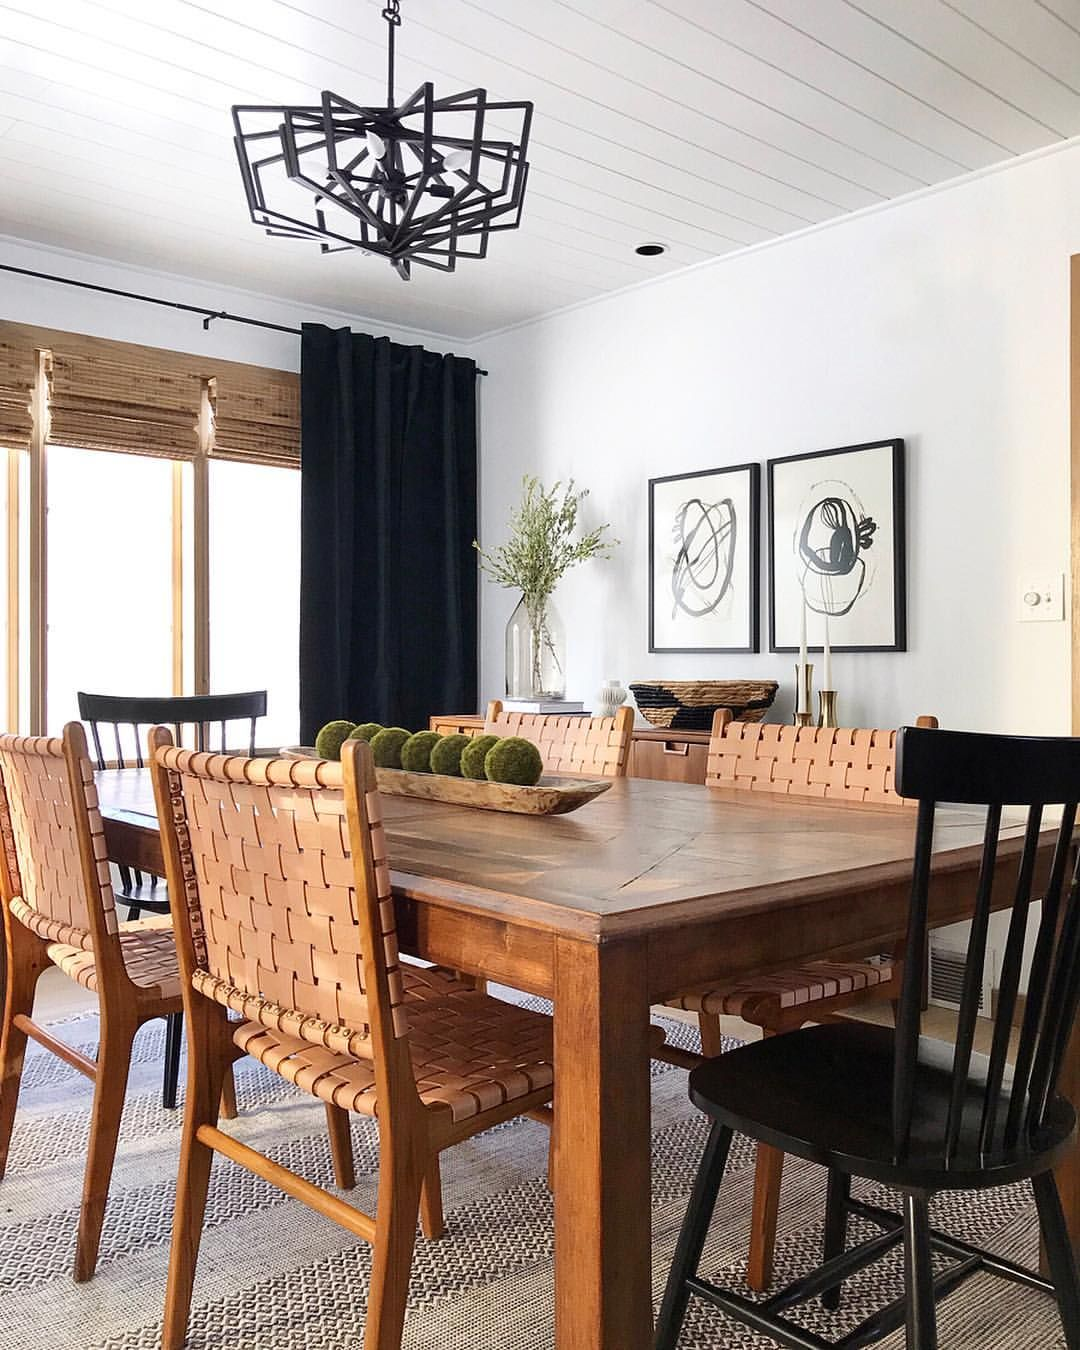 Casual Dining Room Centerpiece Ideas: Modern Dining Room With Woven Leather Chairs And Buffet